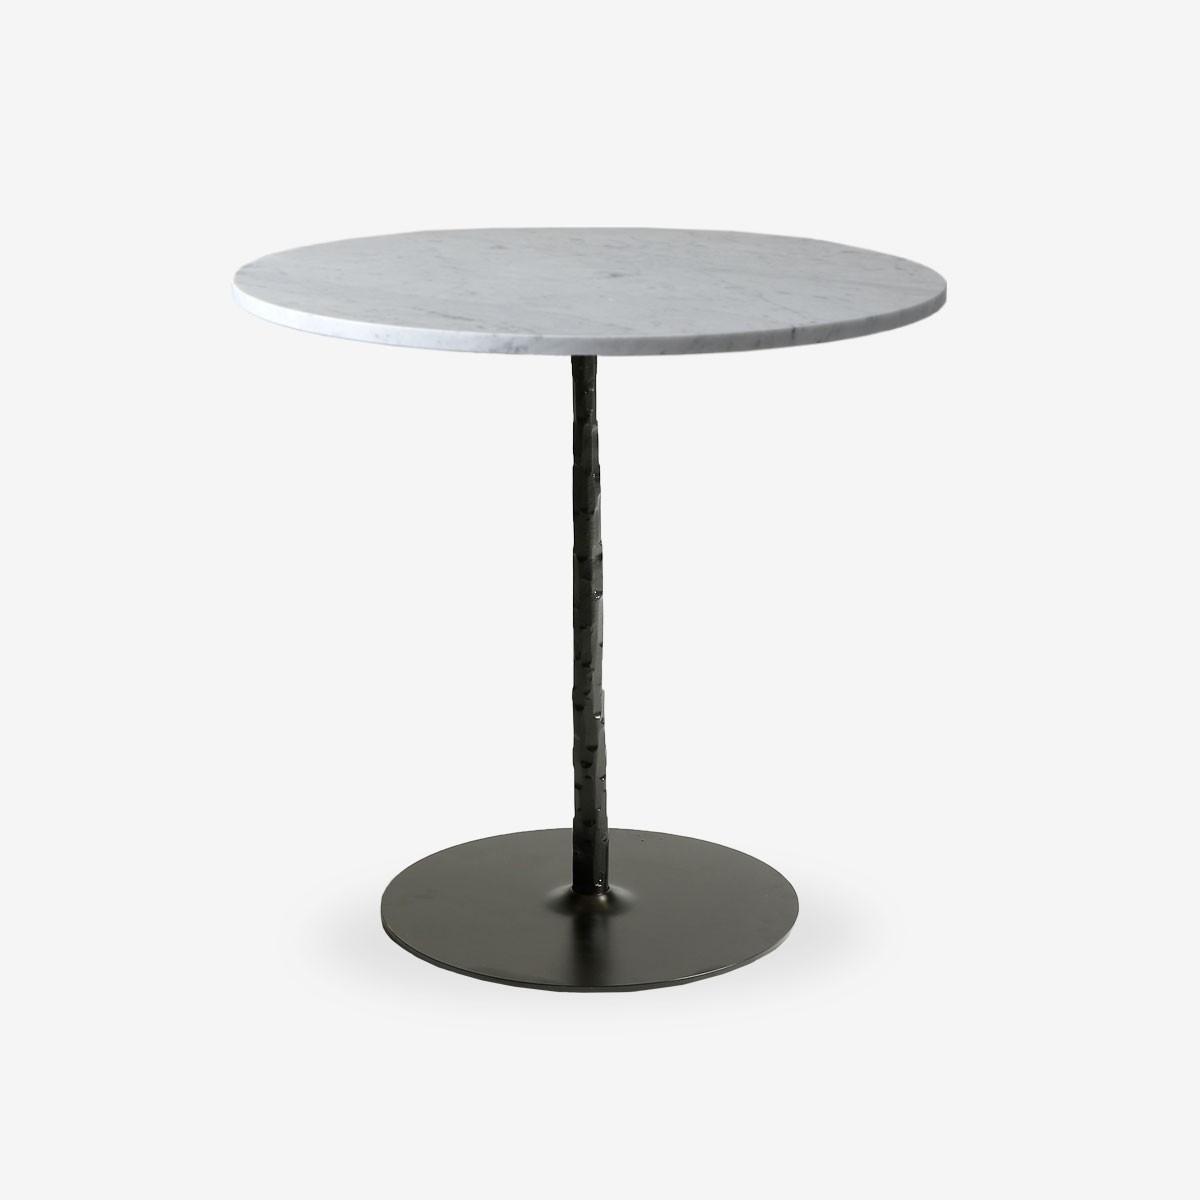 Image shows 360 Dining Table with Marble Top